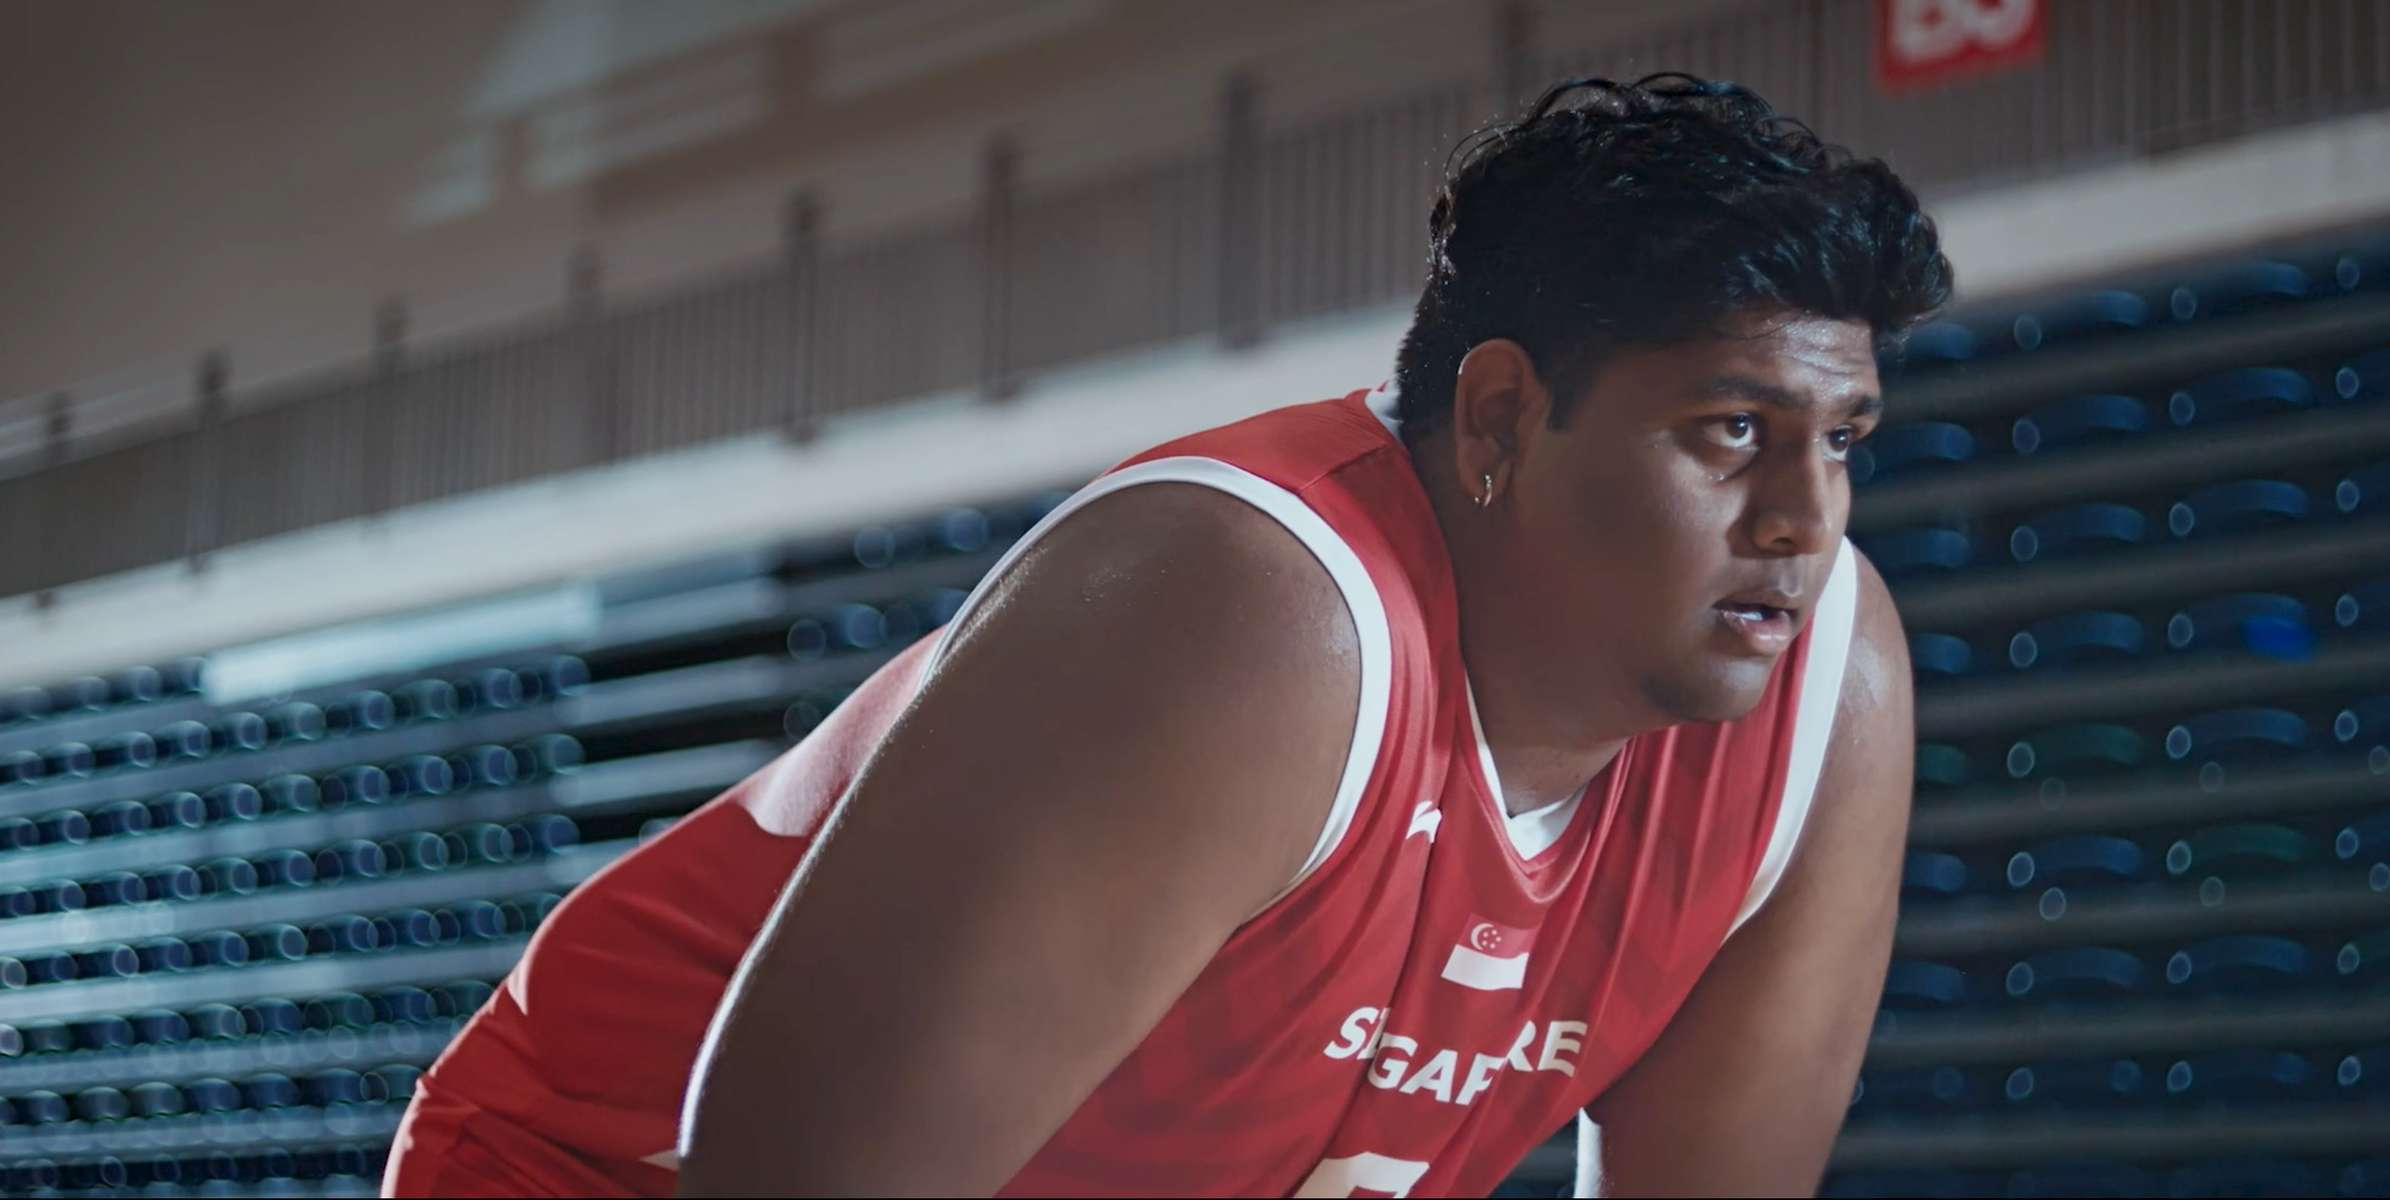 Team Singapore ROAR as ONE campaign for the SEA Games, featuring Lavin Raj.(2019)